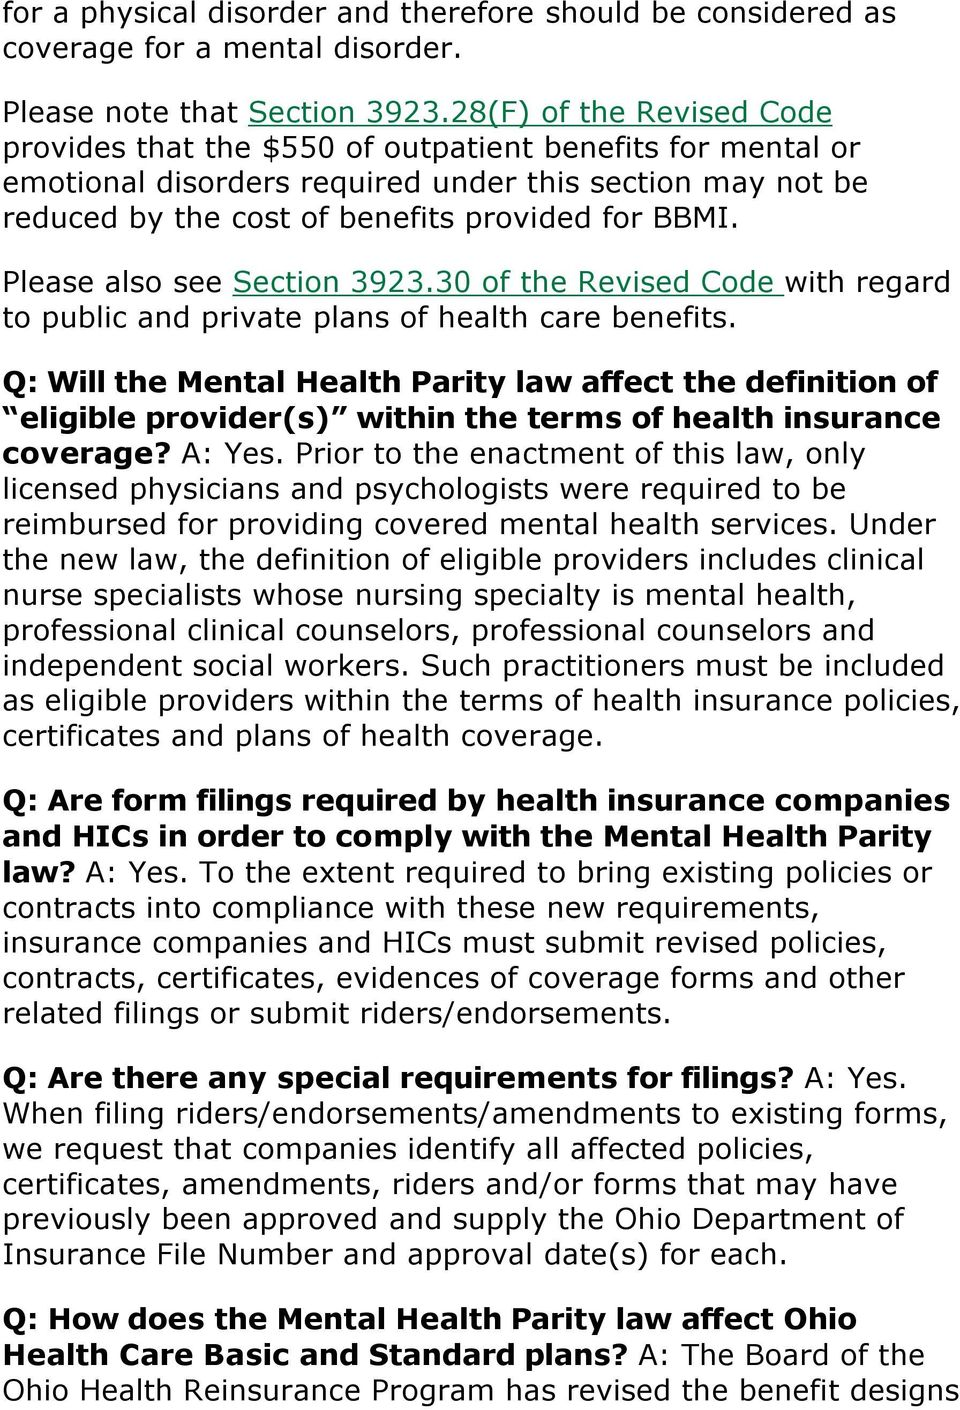 Please also see Section 3923.30 of the Revised Code with regard to public and private plans of health care benefits.